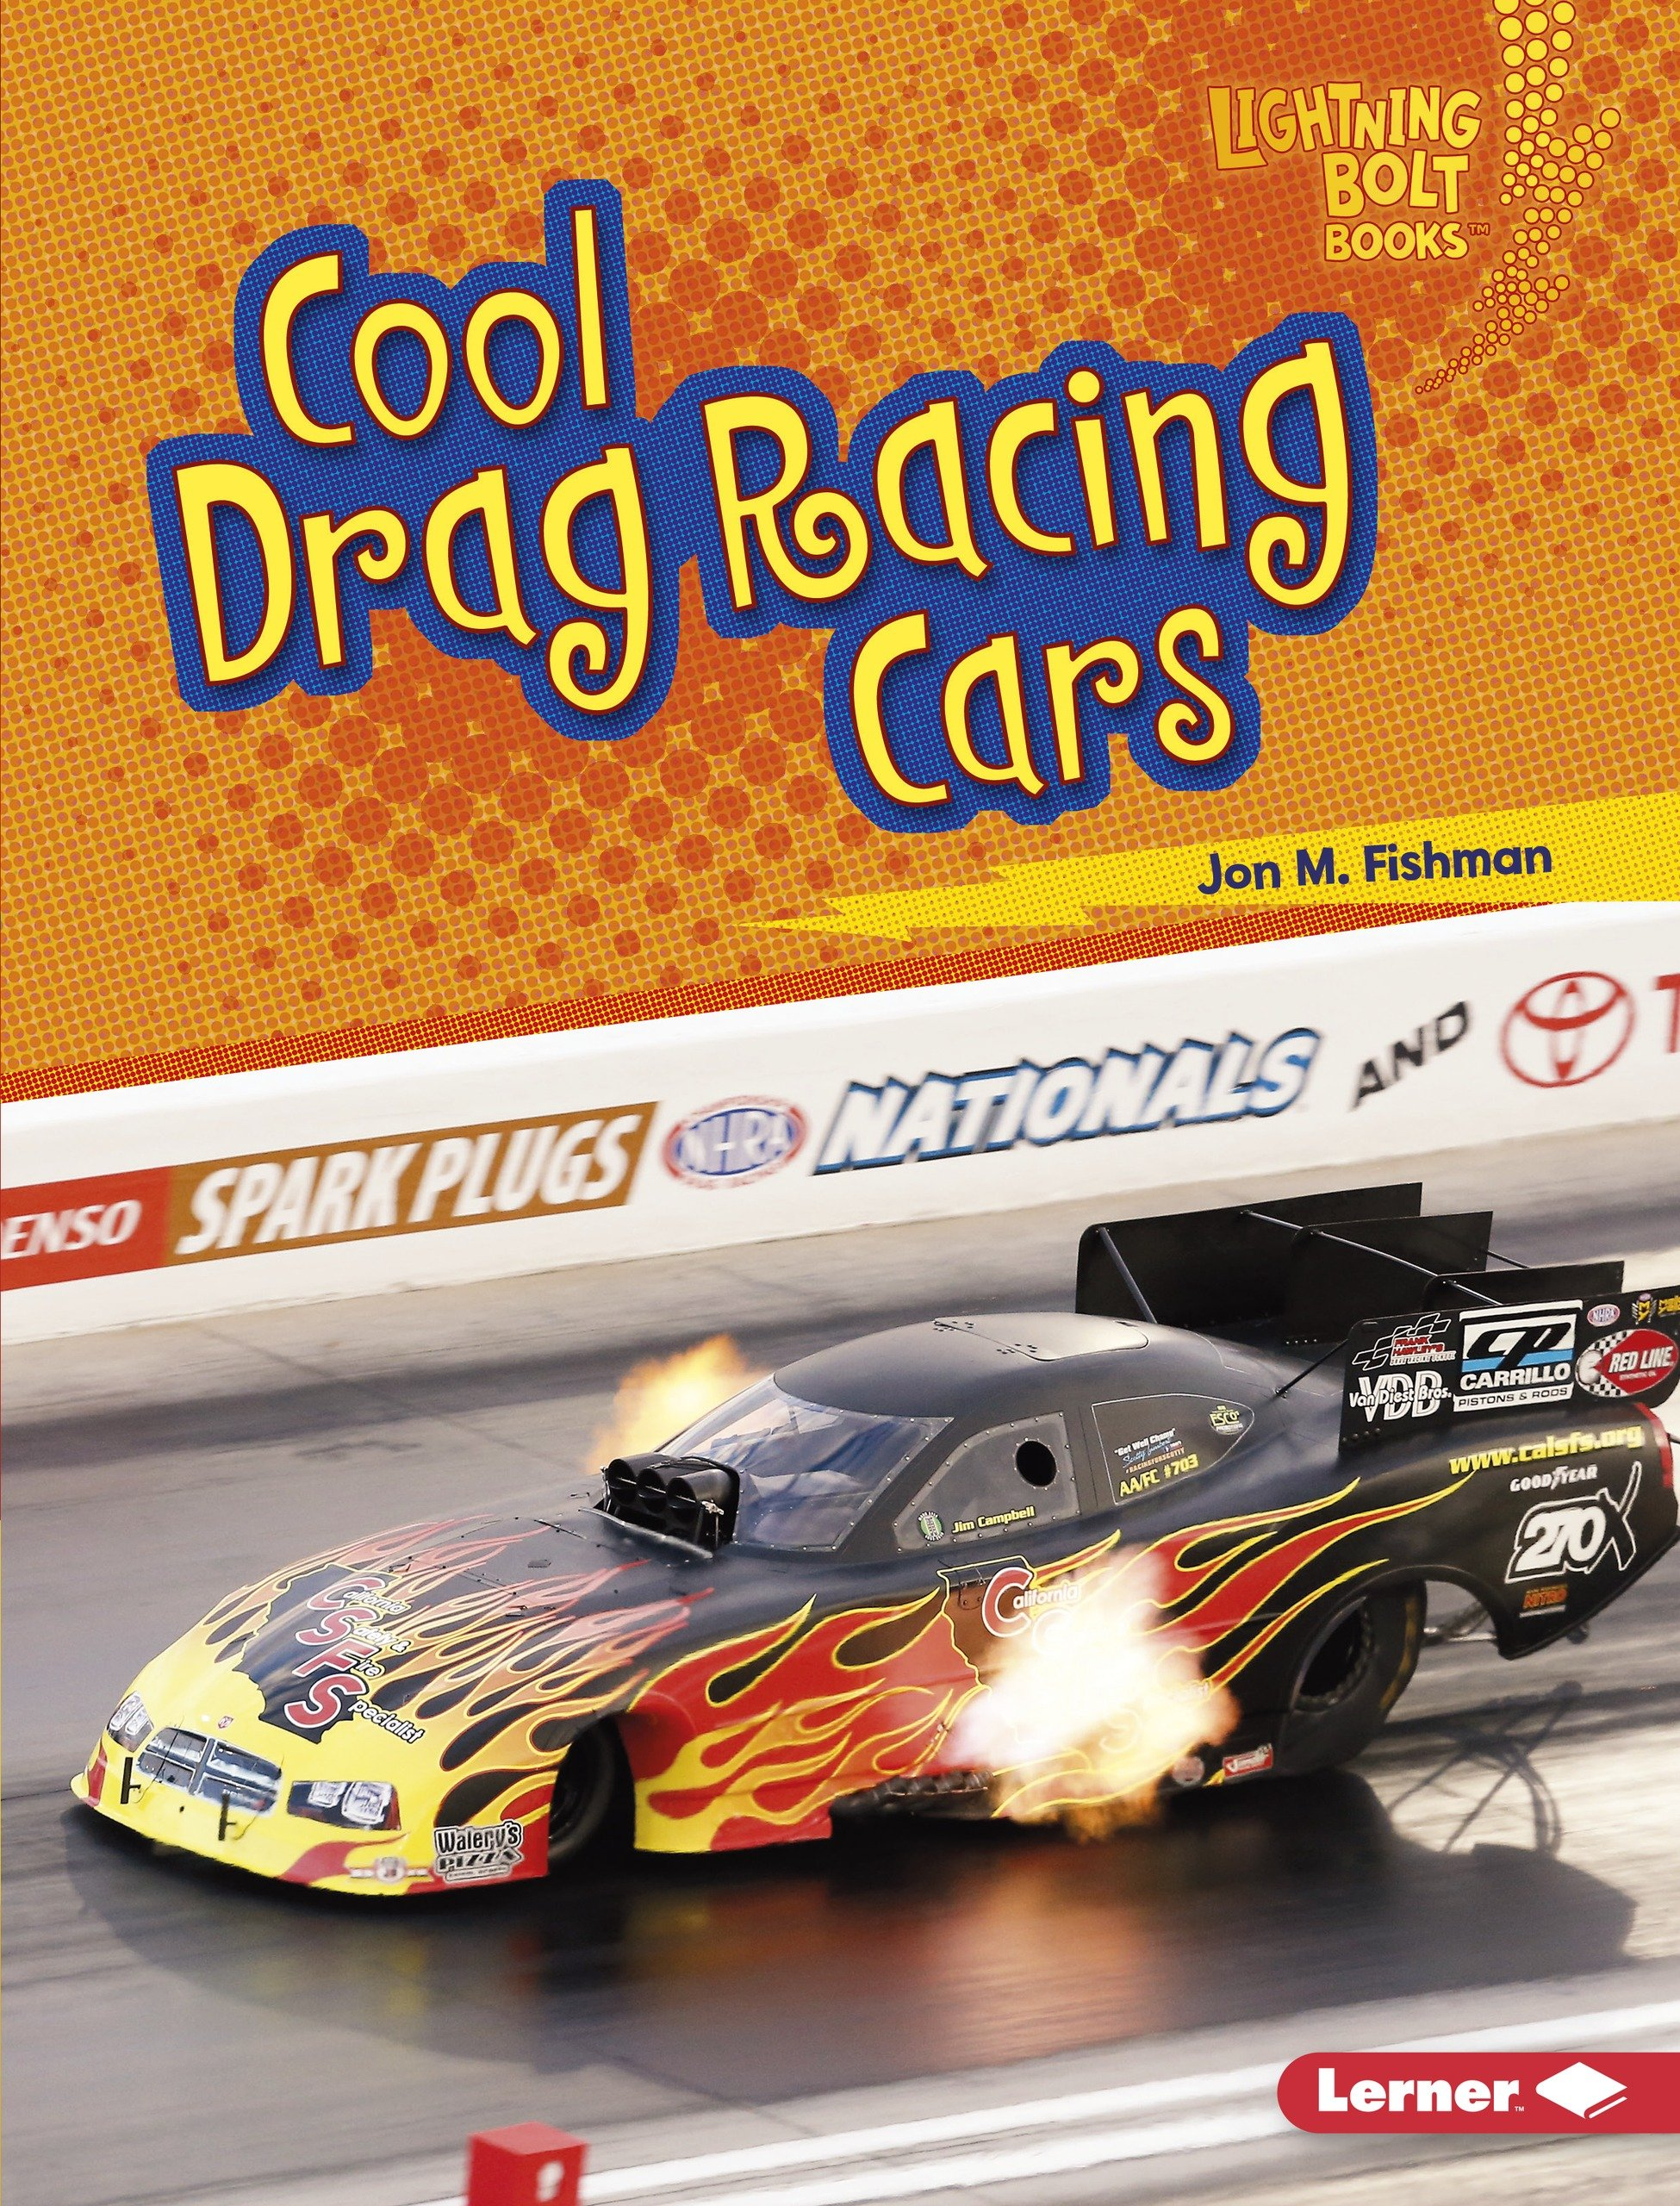 Cool Drag Racing Cars (Lightning Bolt Books: Awesome Rides)